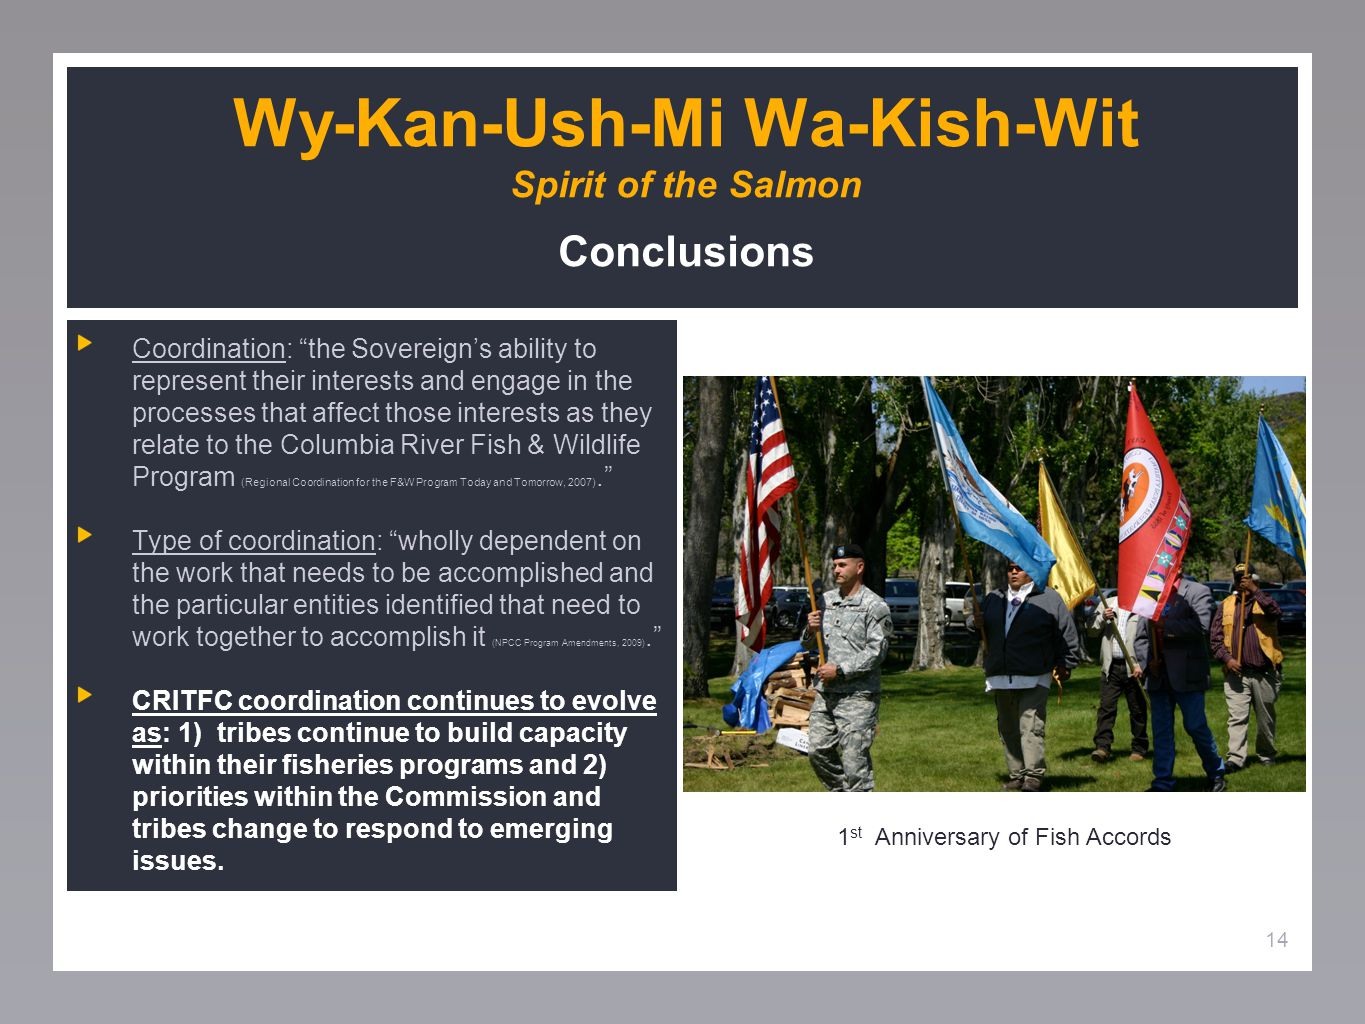 14 Wy-Kan-Ush-Mi Wa-Kish-Wit Spirit of the Salmon Conclusions Coordination: the Sovereign's ability to represent their interests and engage in the processes that affect those interests as they relate to the Columbia River Fish & Wildlife Program (Regional Coordination for the F&W Program Today and Tomorrow, 2007). Type of coordination: wholly dependent on the work that needs to be accomplished and the particular entities identified that need to work together to accomplish it (NPCC Program Amendments, 2009). CRITFC coordination continues to evolve as: 1) tribes continue to build capacity within their fisheries programs and 2) priorities within the Commission and tribes change to respond to emerging issues.